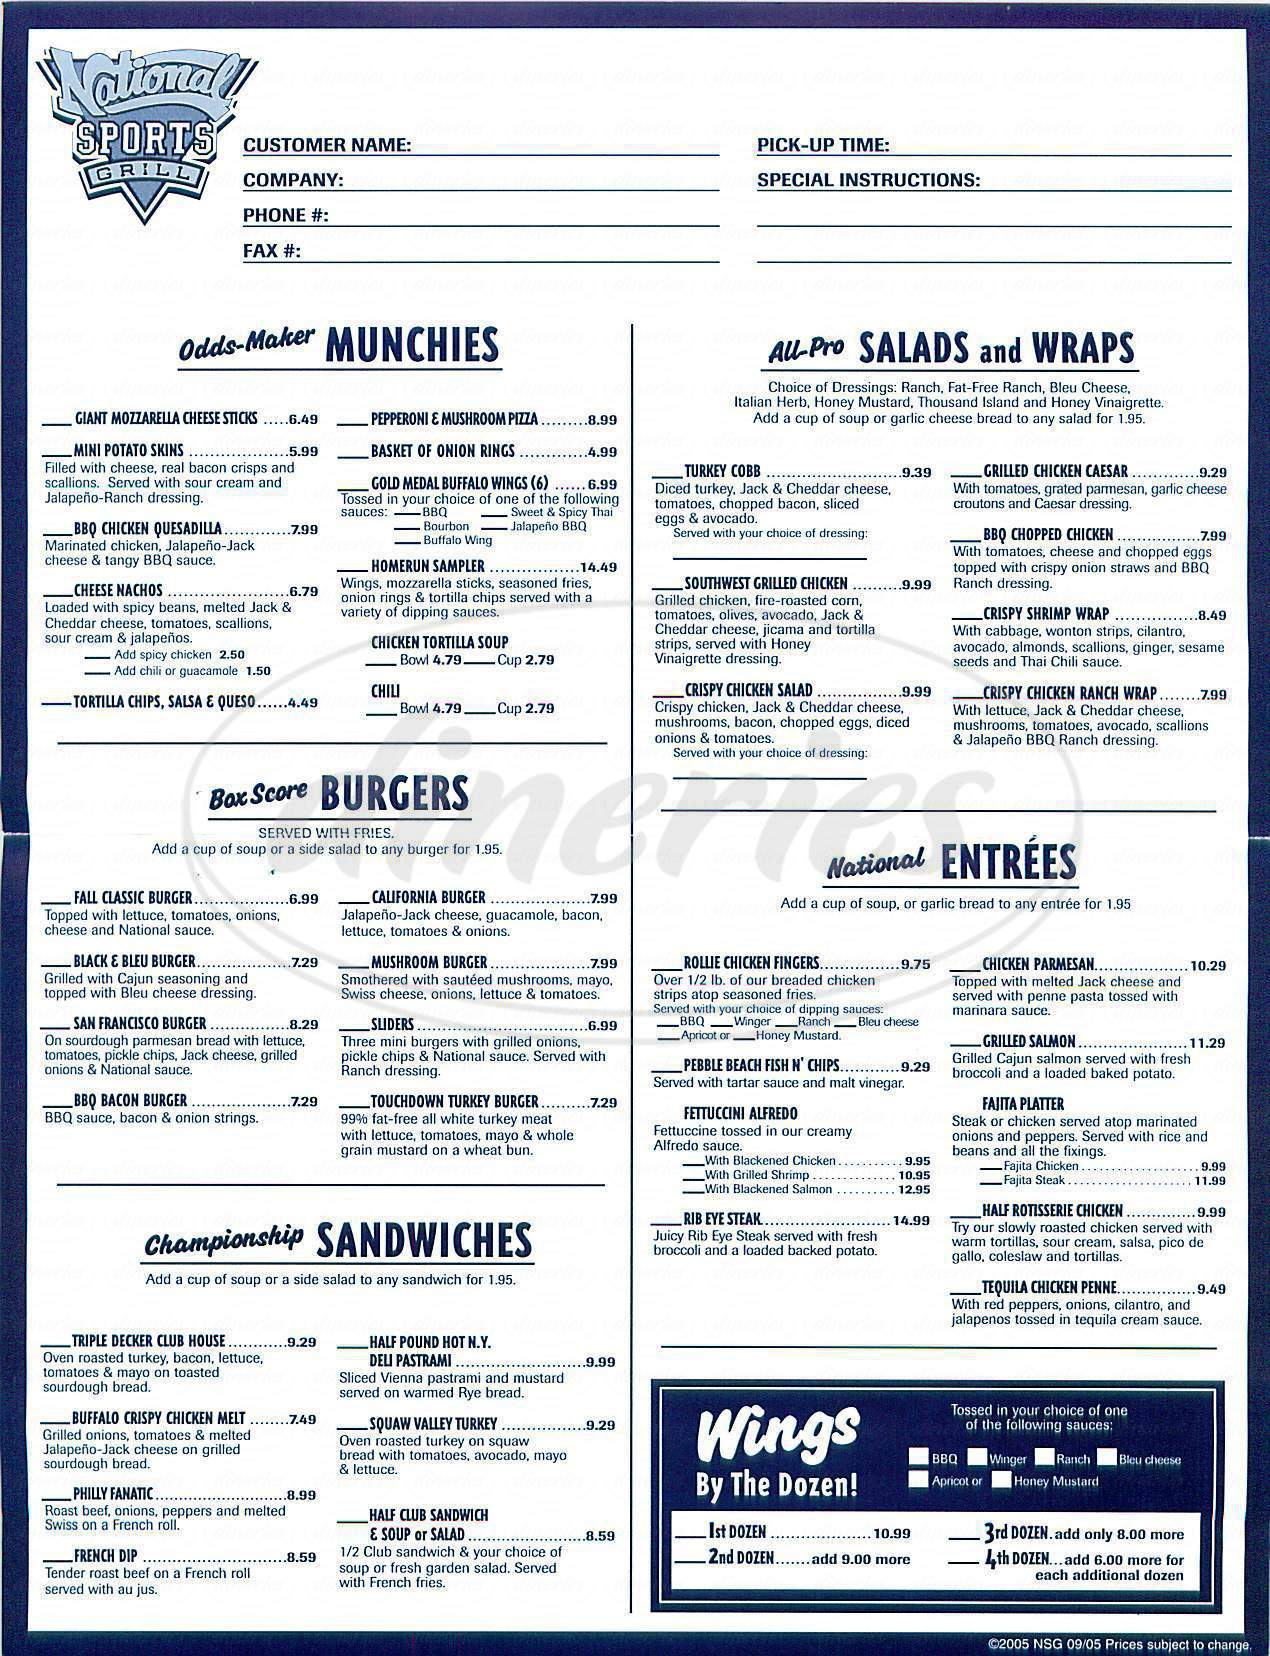 menu for National Sports Grill